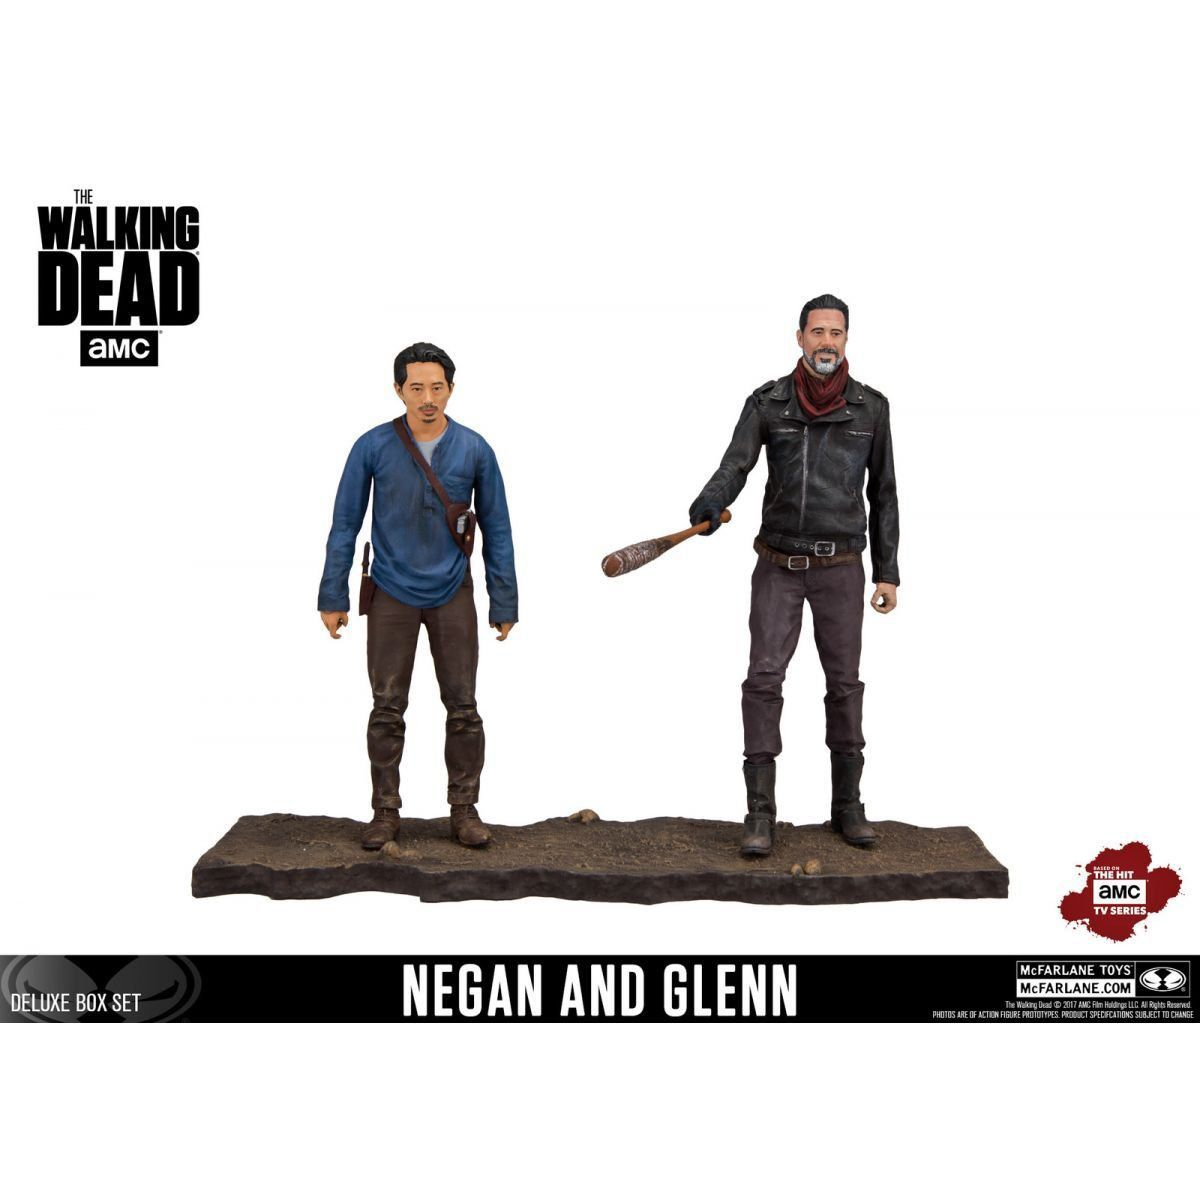 Boneco Negan & Glenn: The Walking Dead Deluxe Box Set Escala 1/10 - Mcfarlane Toys